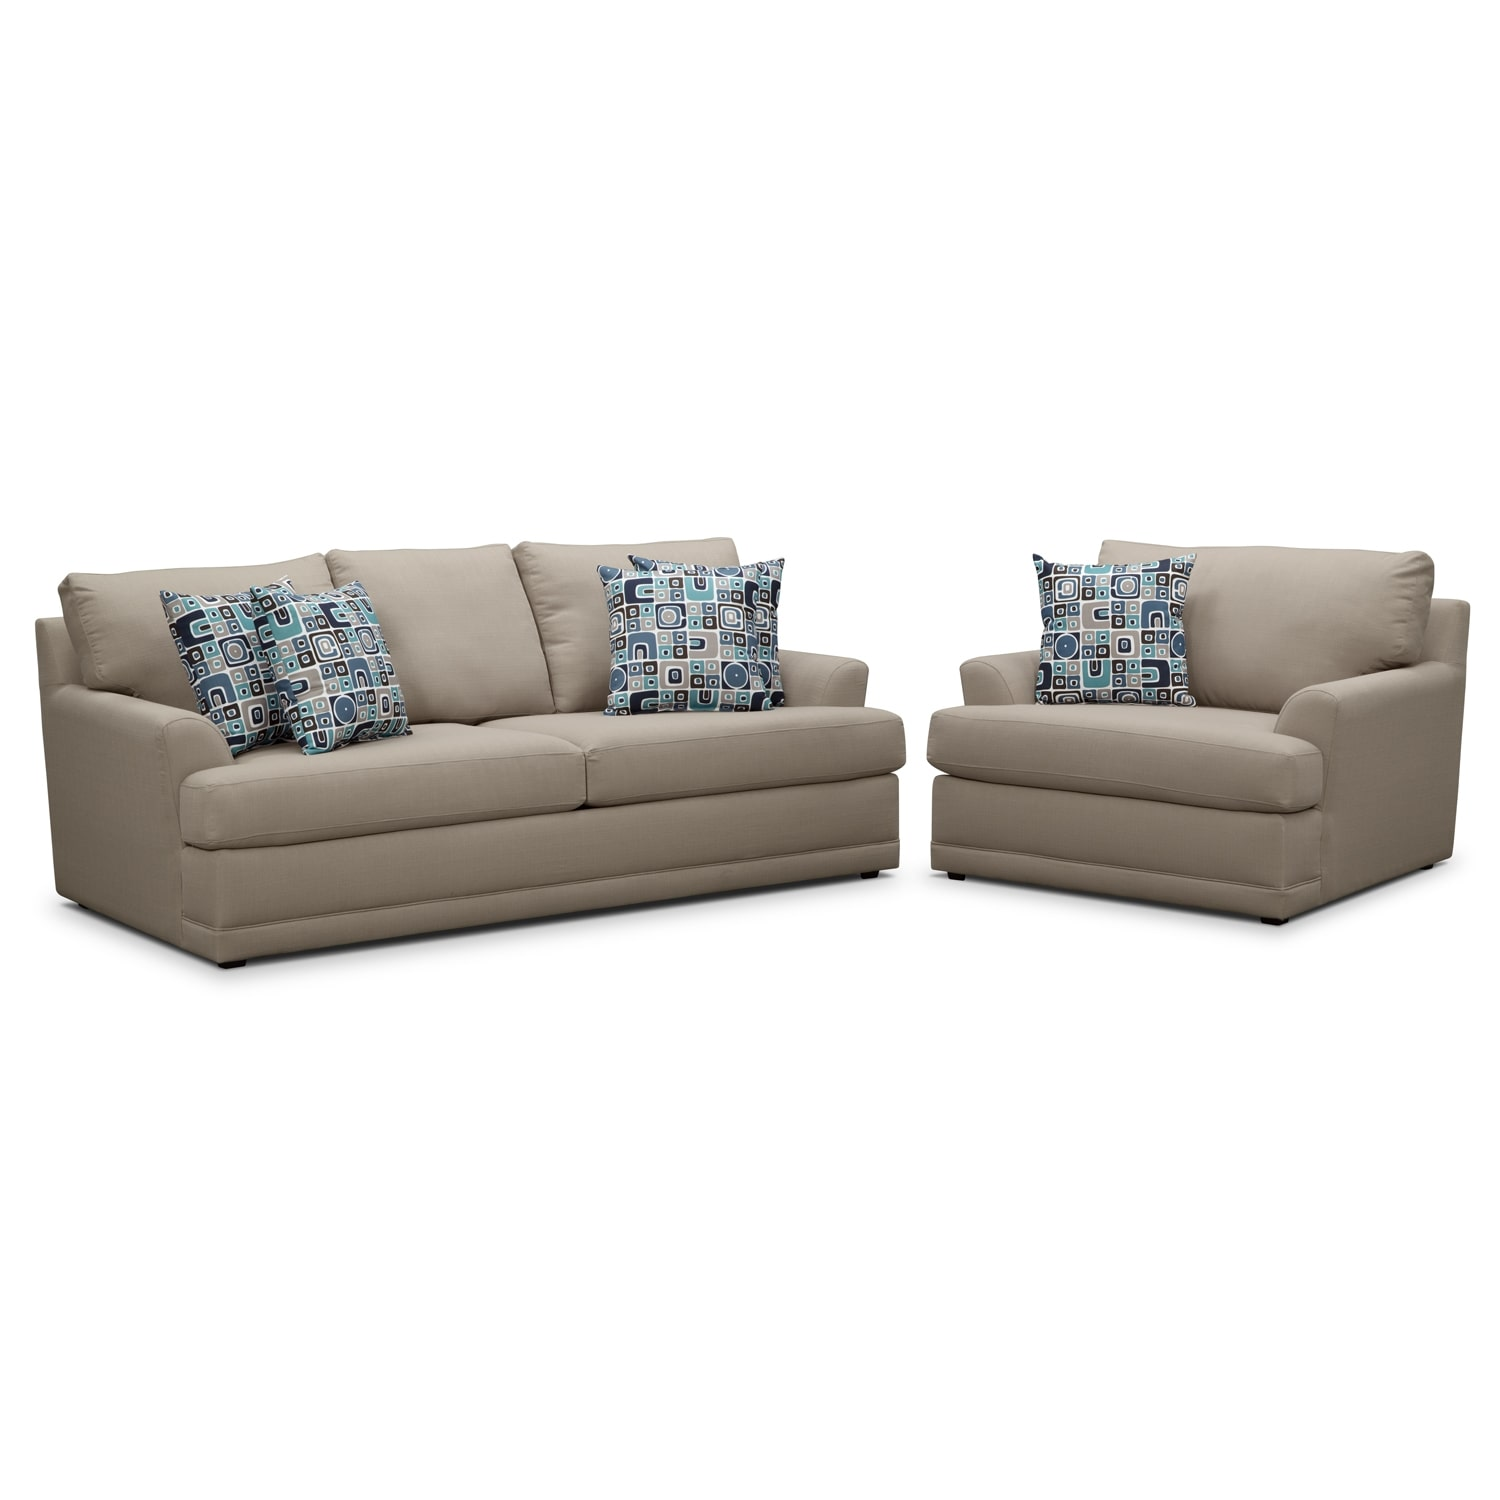 Living Room Furniture - Kismet II 2 Pc. Living Room w/ Chair and a Half